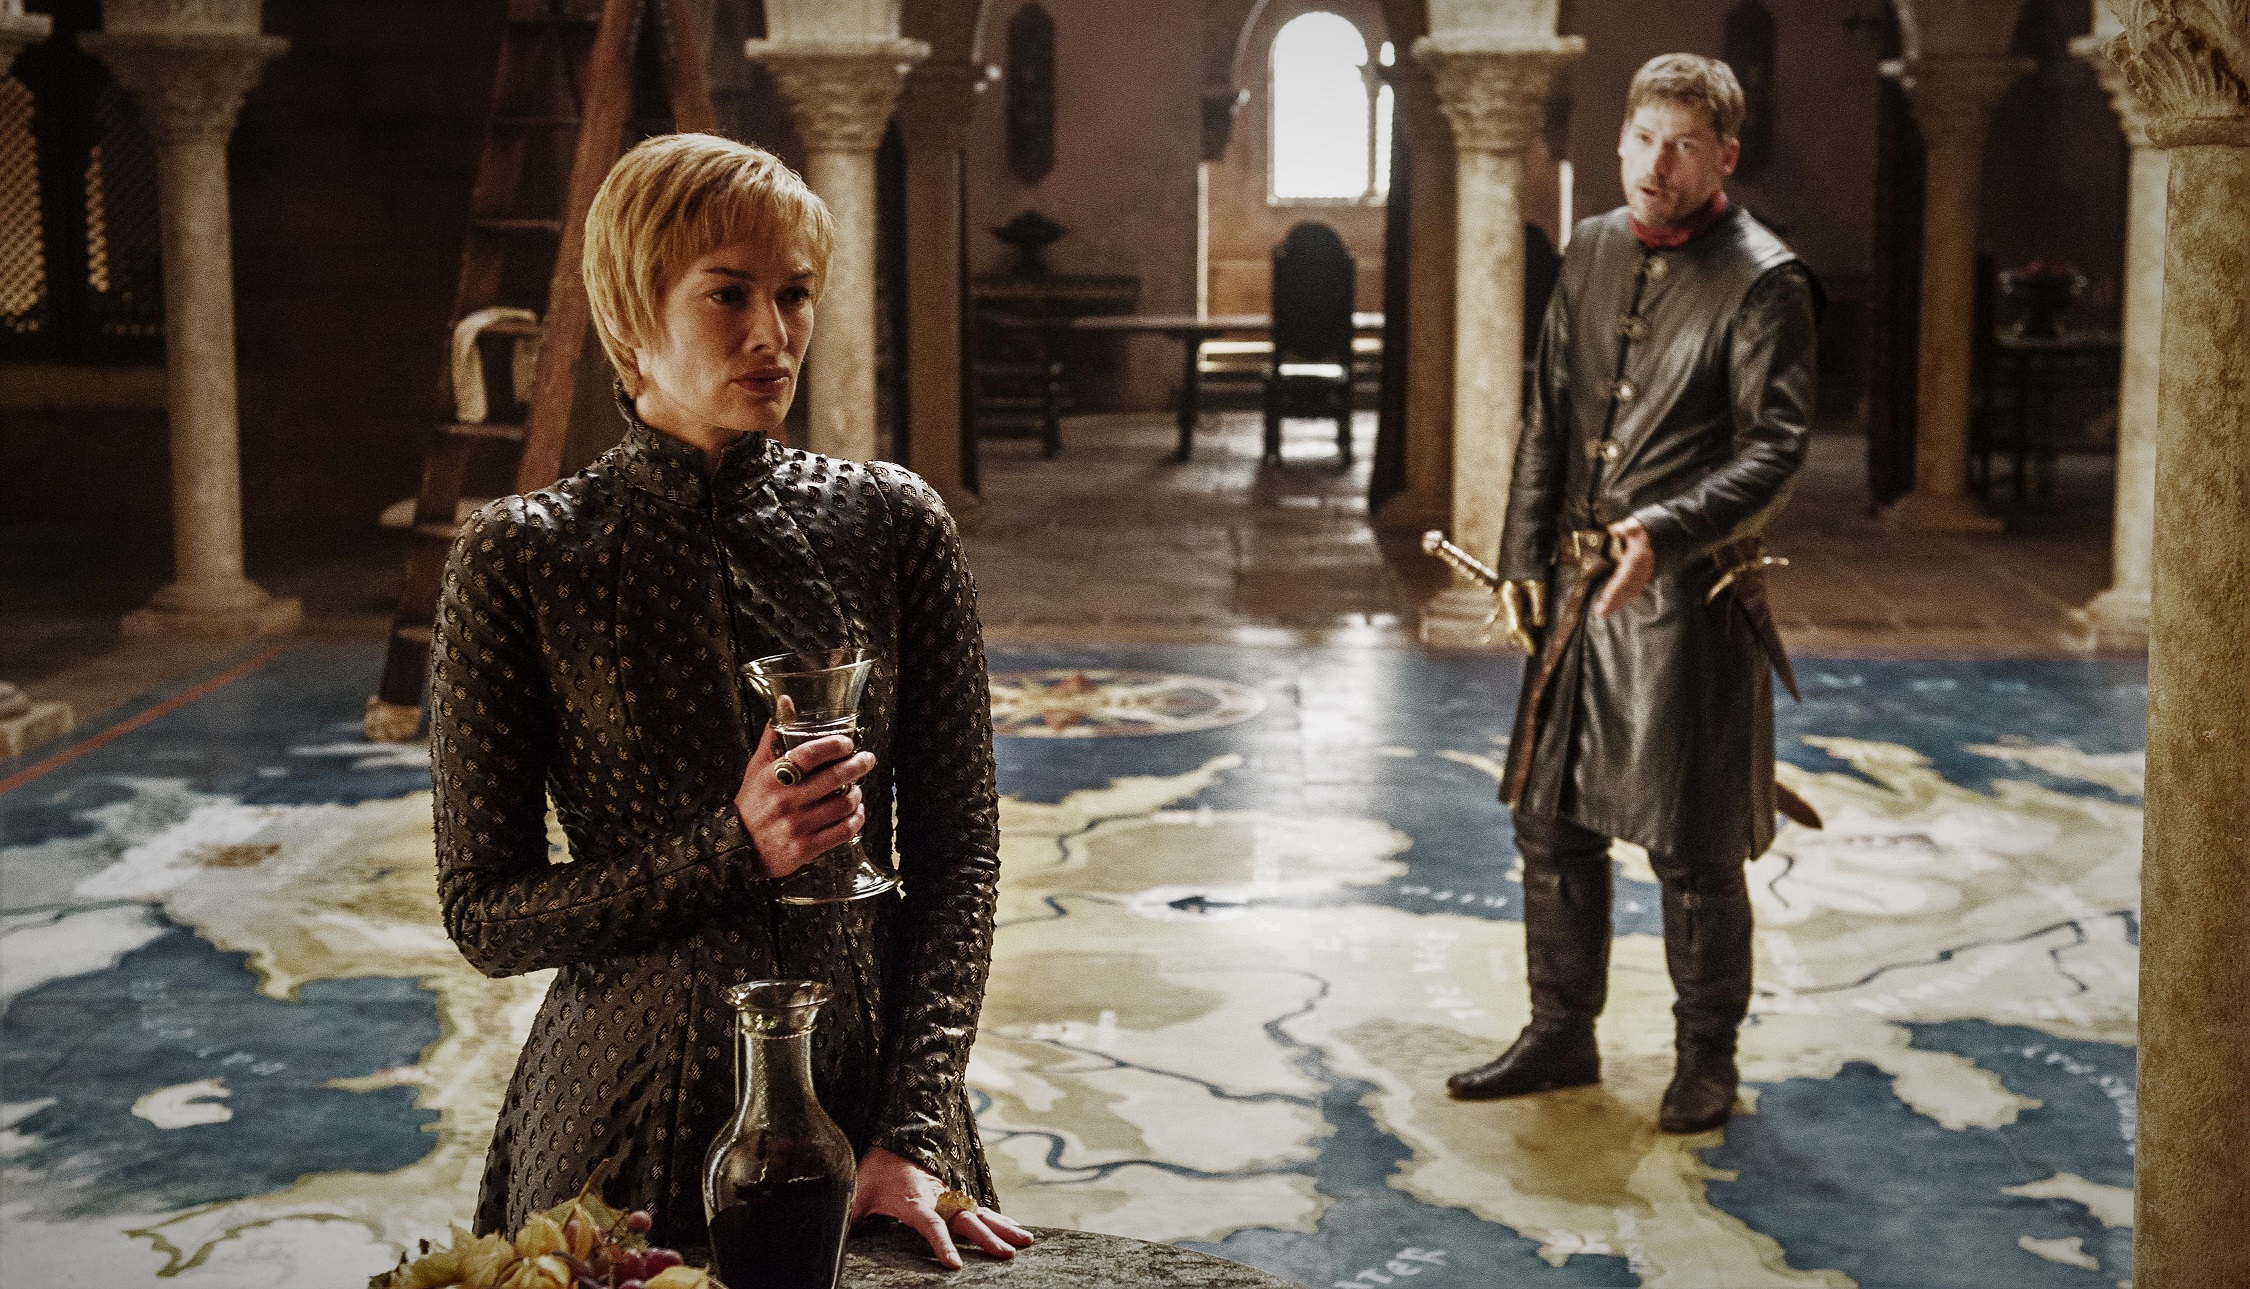 Cersei, Jaime, and relationship counseling